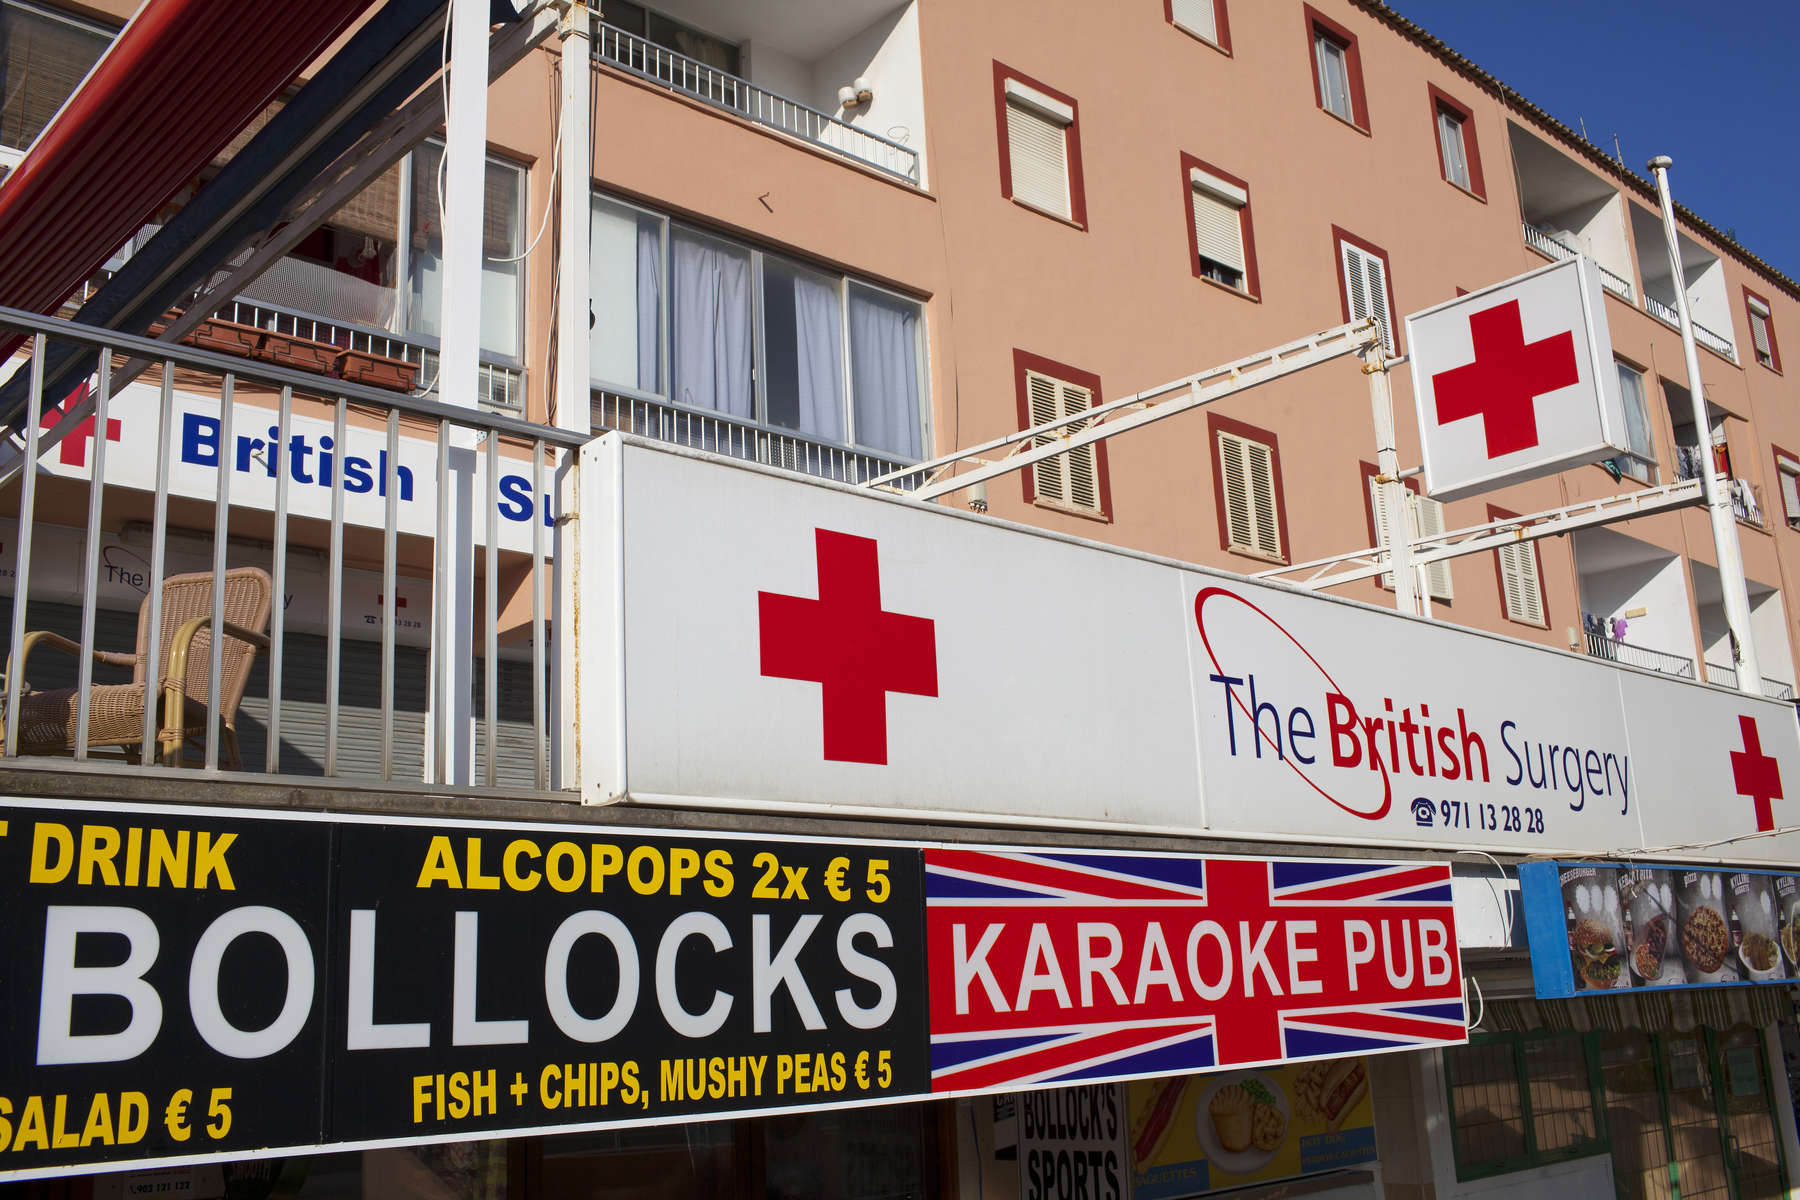 The British Surgery located above the Green Parrot Bollocks Bar in Magaluf, Majorca. The bars and clubs in the resort largely cater for British tourists.